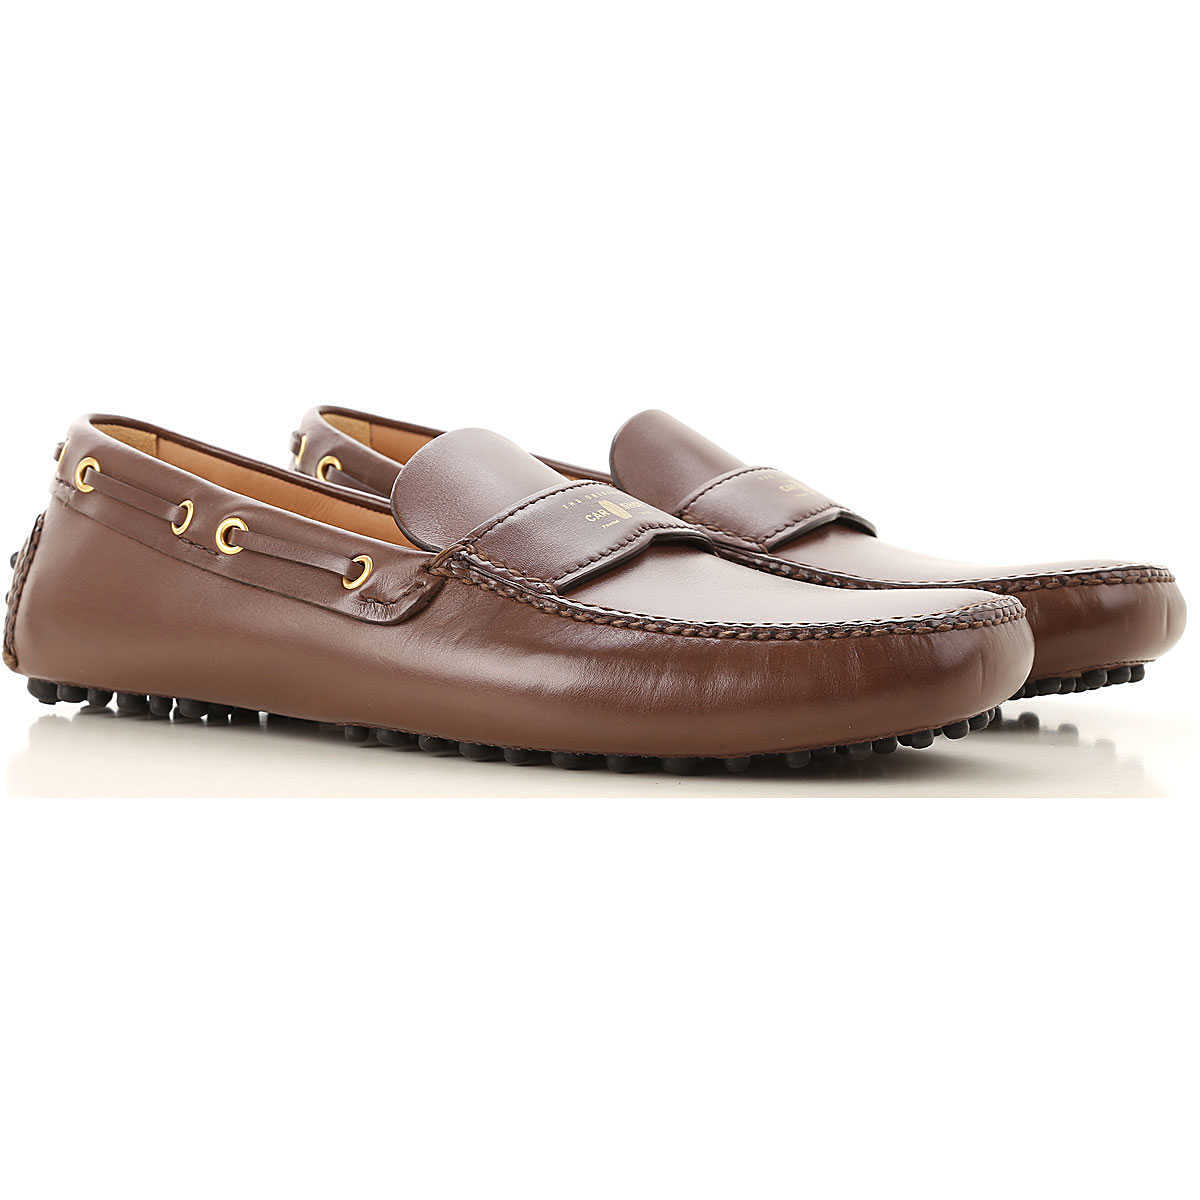 Car Shoe Loafers for Men On Sale in Outlet Brown DK - GOOFASH - Mens LOAFERS